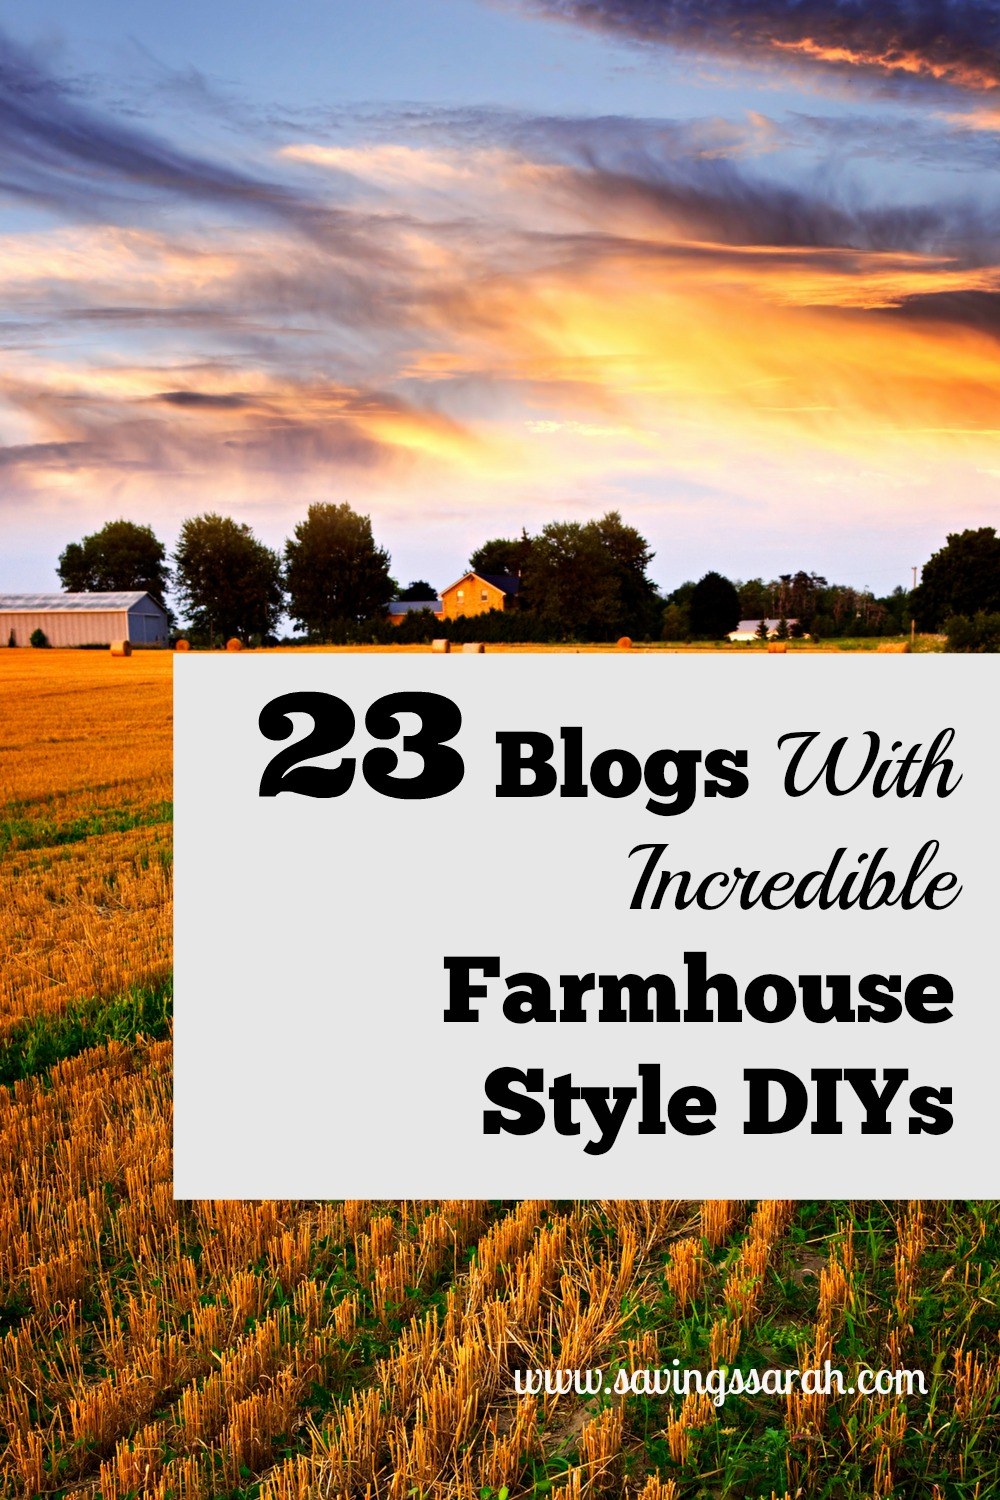 23 Blogs with Incredible Farmhouse Style DIYs - Earning and ...